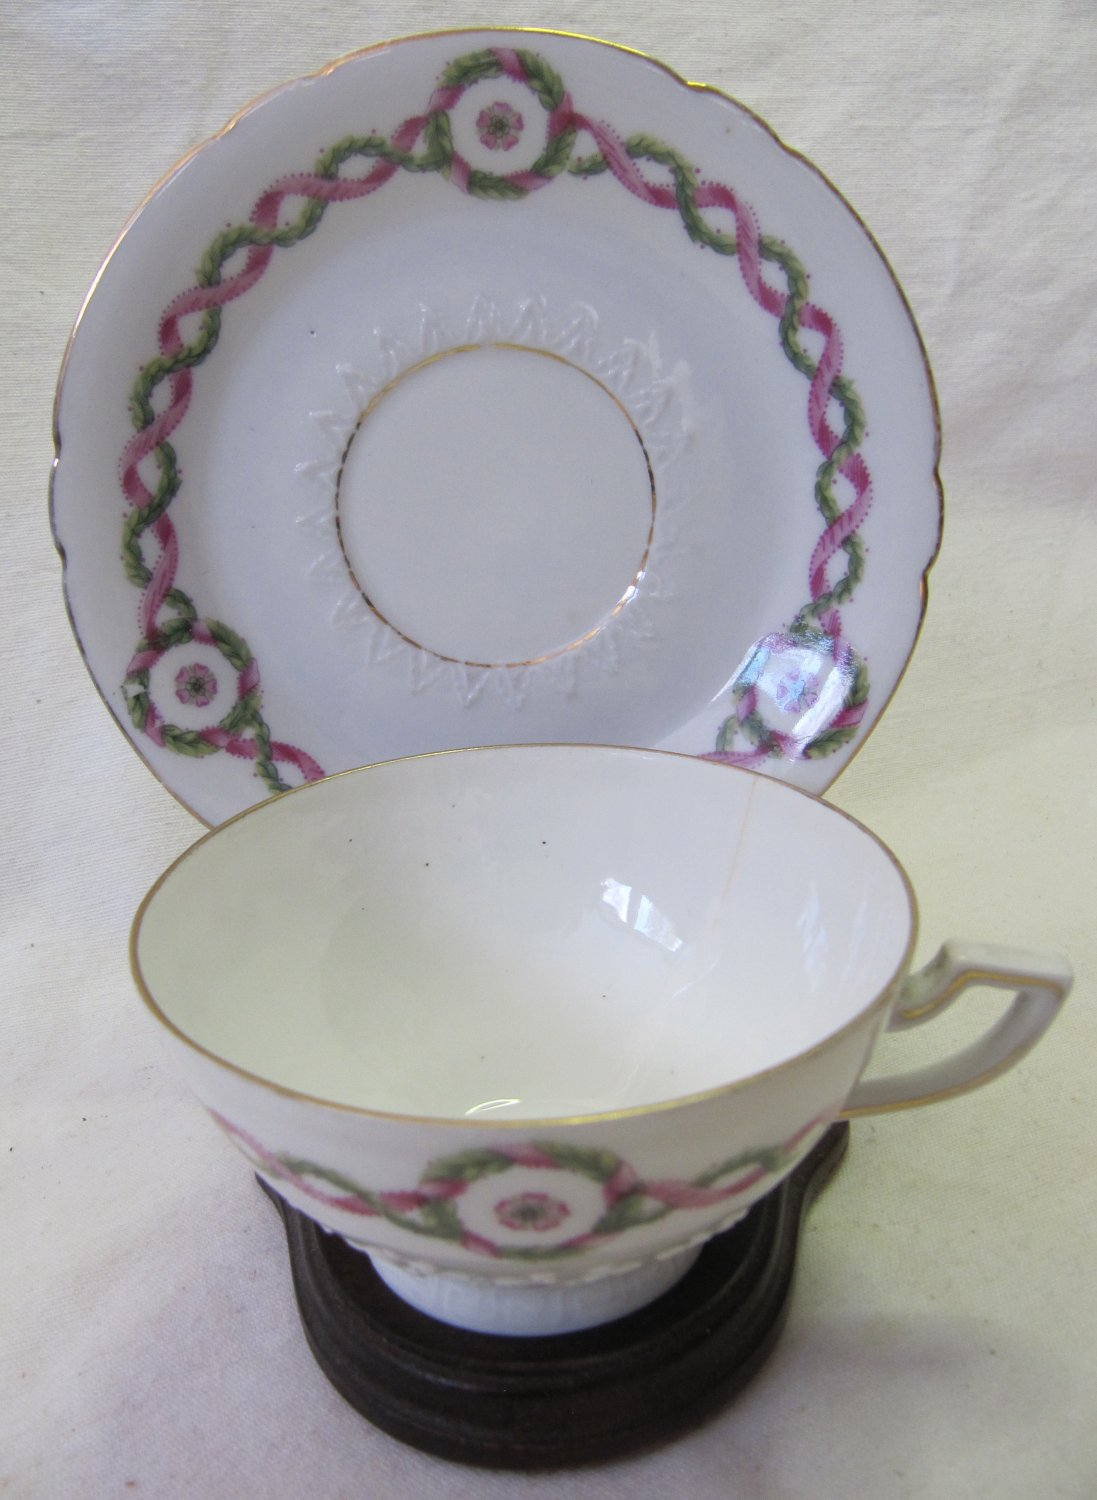 Vintage Weimar Germany Cup and Saucer White Christmas Holly Garland Red Ribbon Design Gilt